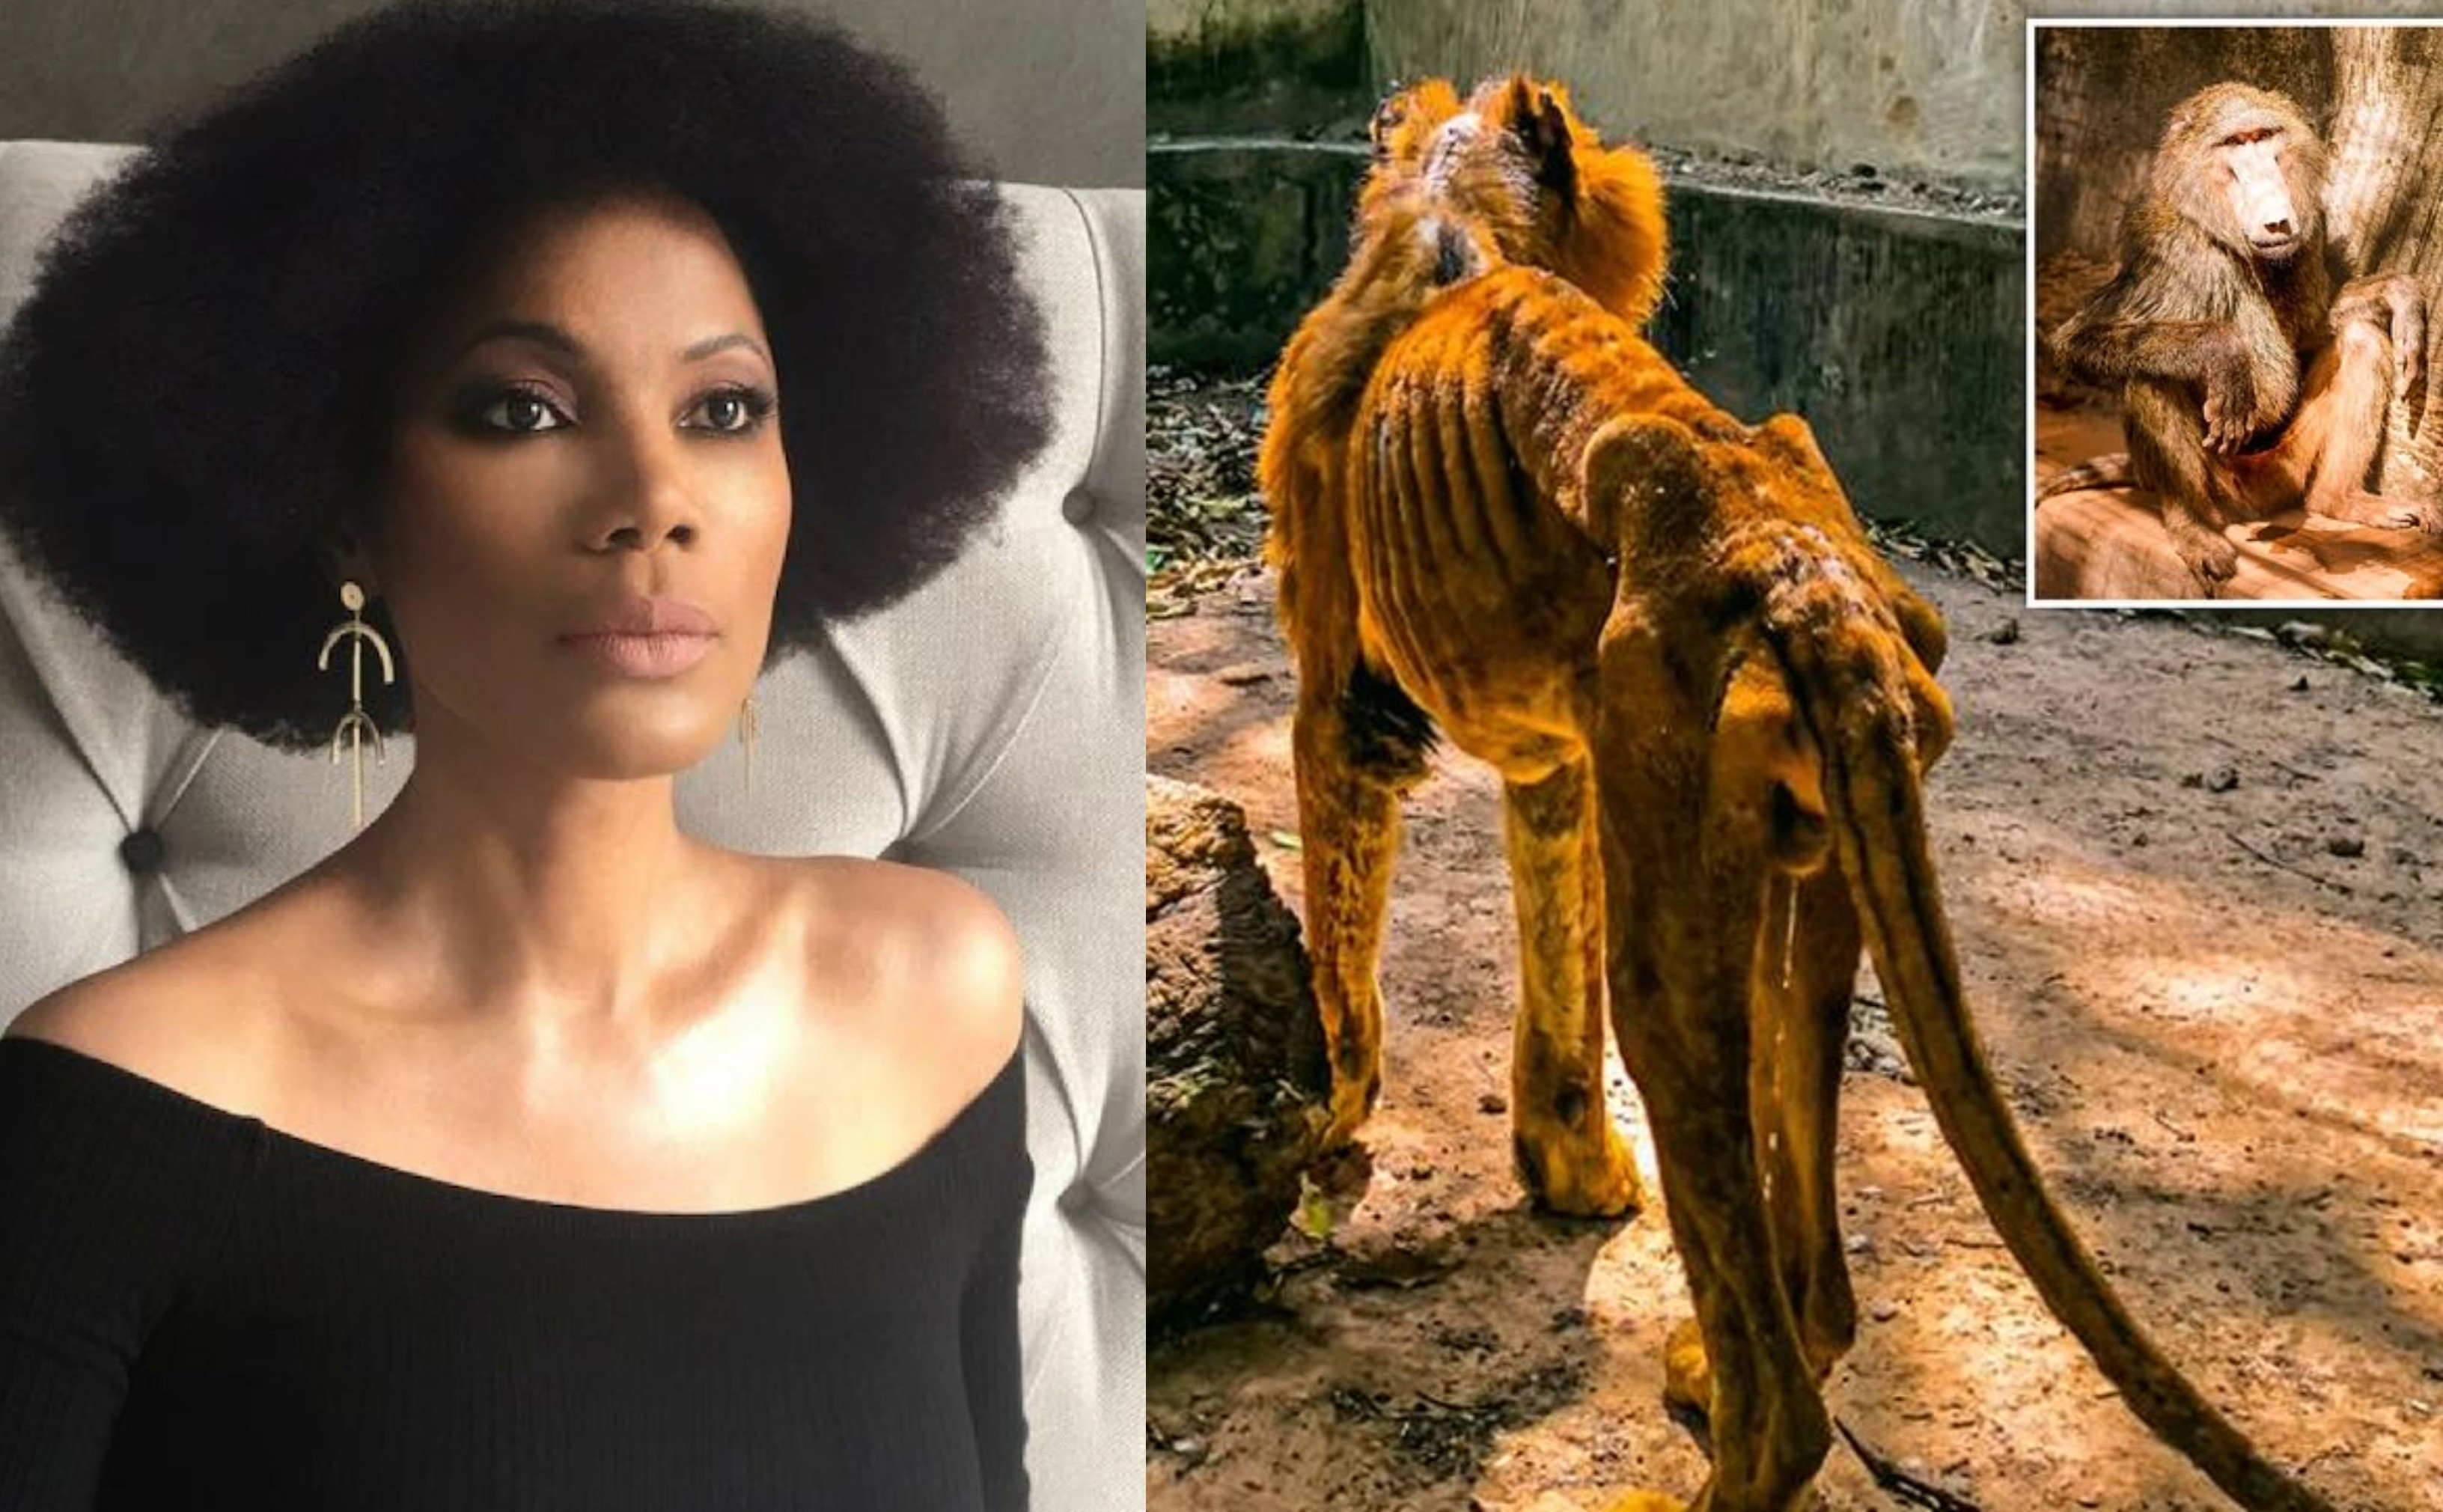 Such a strong society metaphor - Funmi Iyanda reacts to photos of starving lion and dozens of underfed animals at a Nigerian zoo lindaikejisblog